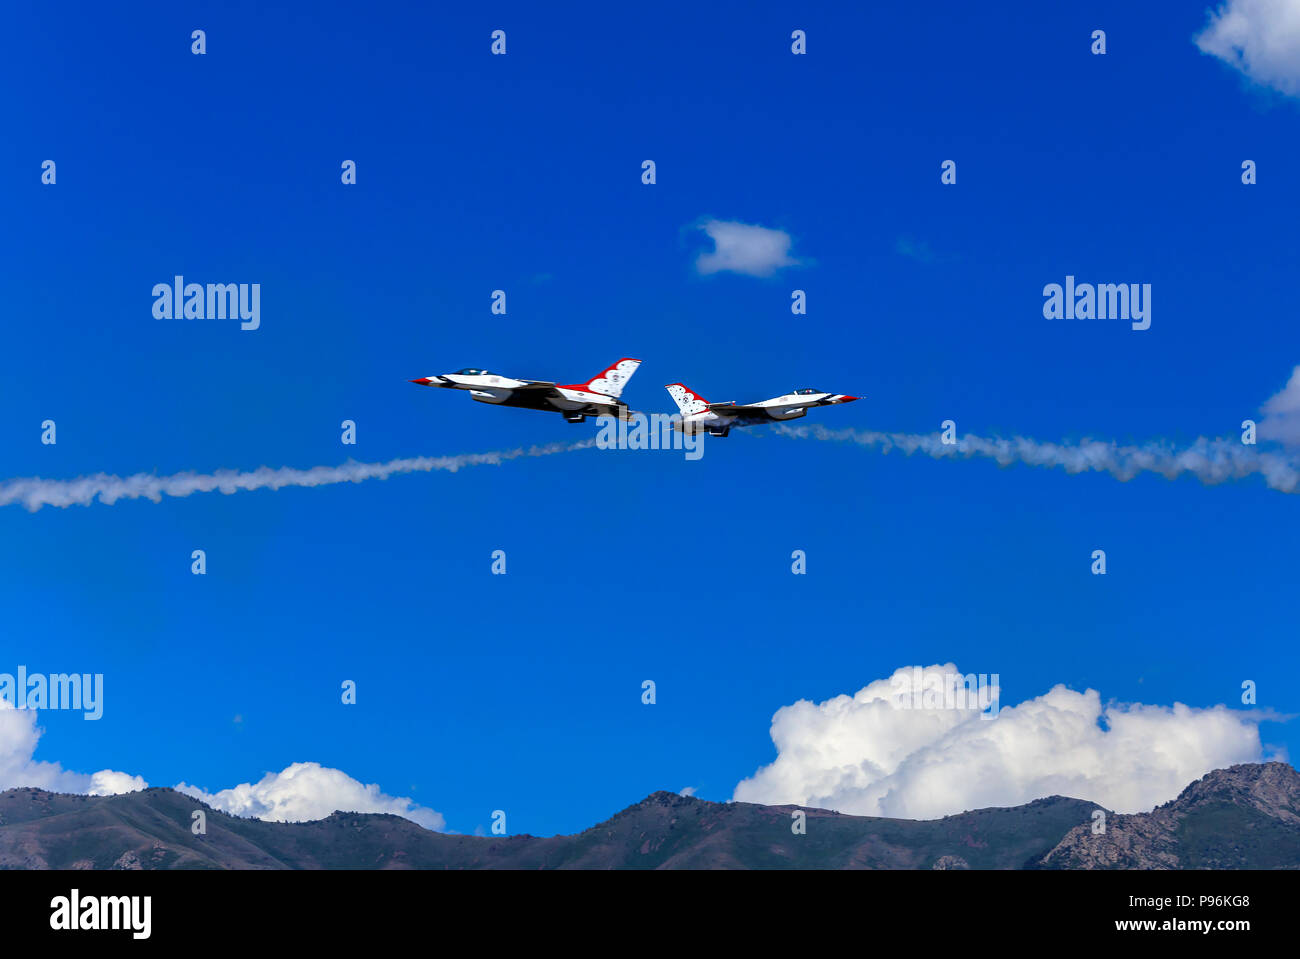 In this shot two of the aircraft of the U. S. Air Force Air Demonstration Squadron (Thunderbirds) perform the 'Knife Edge' maneuver at Hill AFB, Utah. - Stock Image